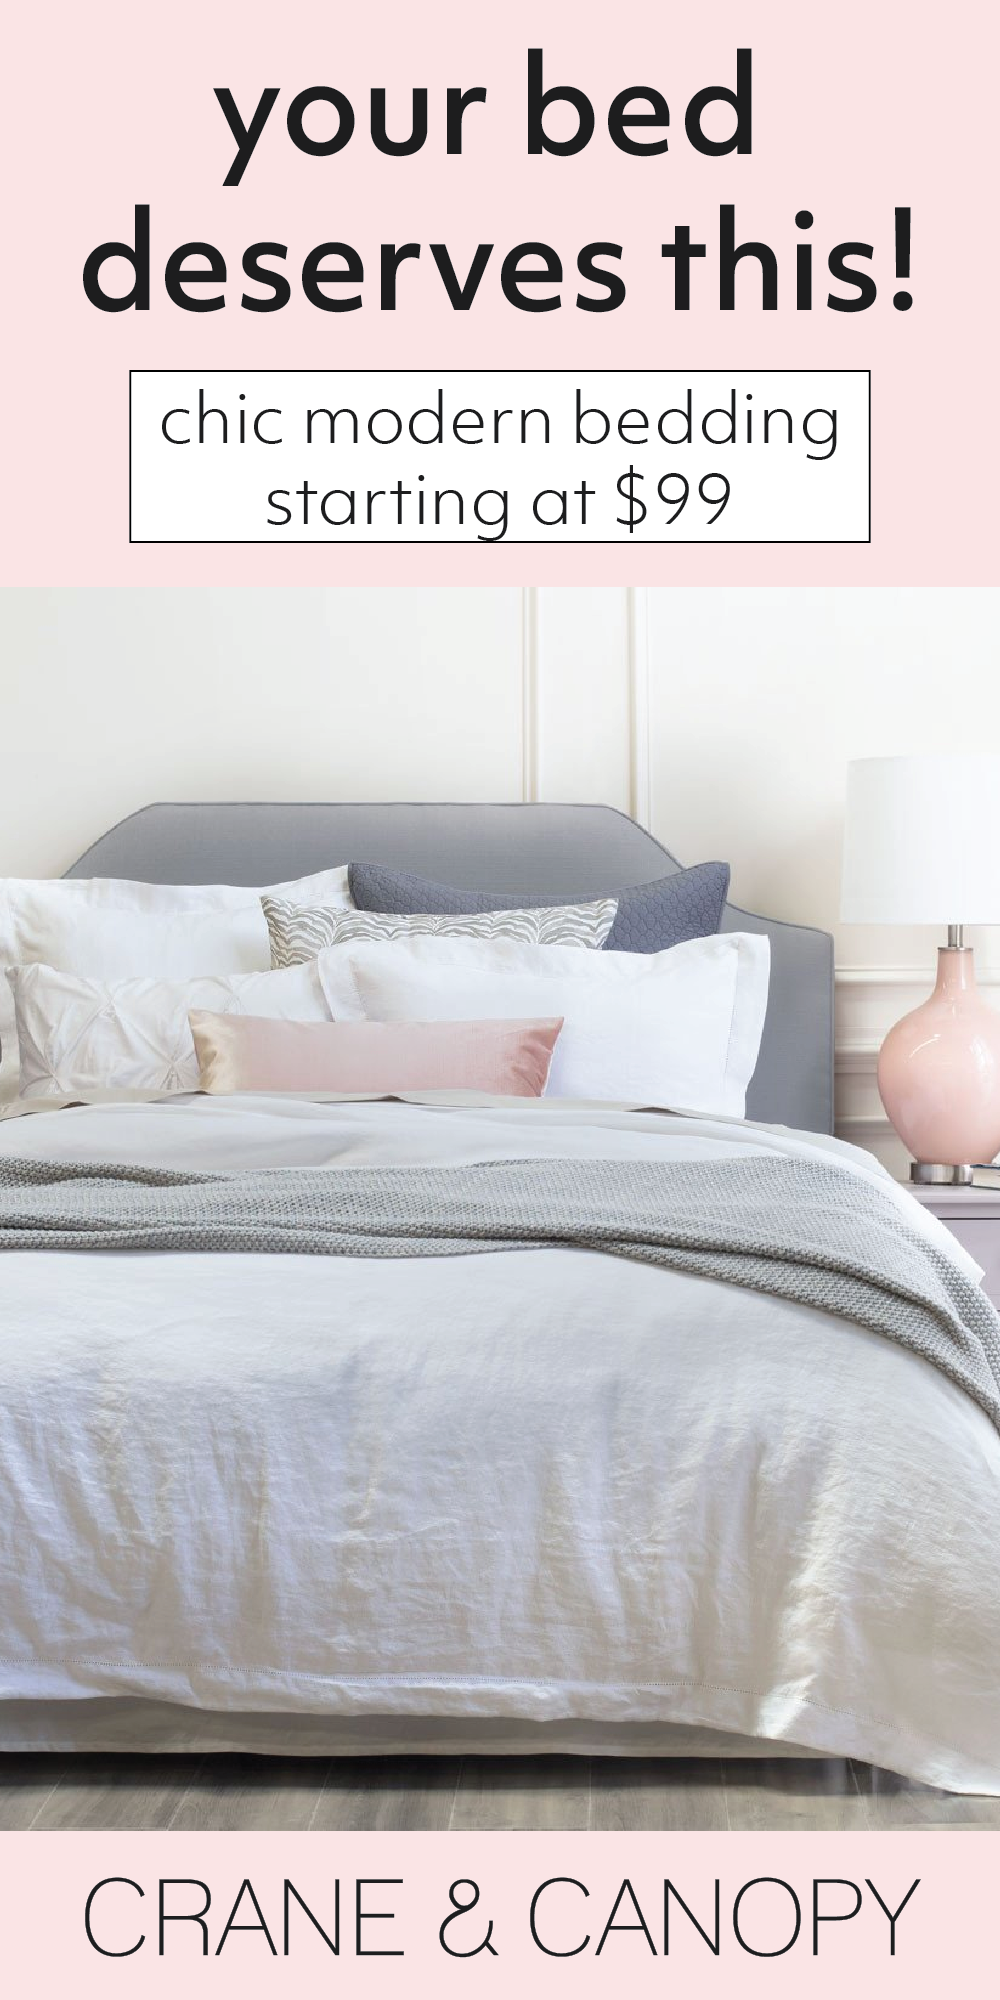 From chic bedding and beautiful statement duvet covers, find gorgeous bedding to build the bedroom of your dreams. Named the best site for bedding by HGTV. #gardendesign #modernhousedesign